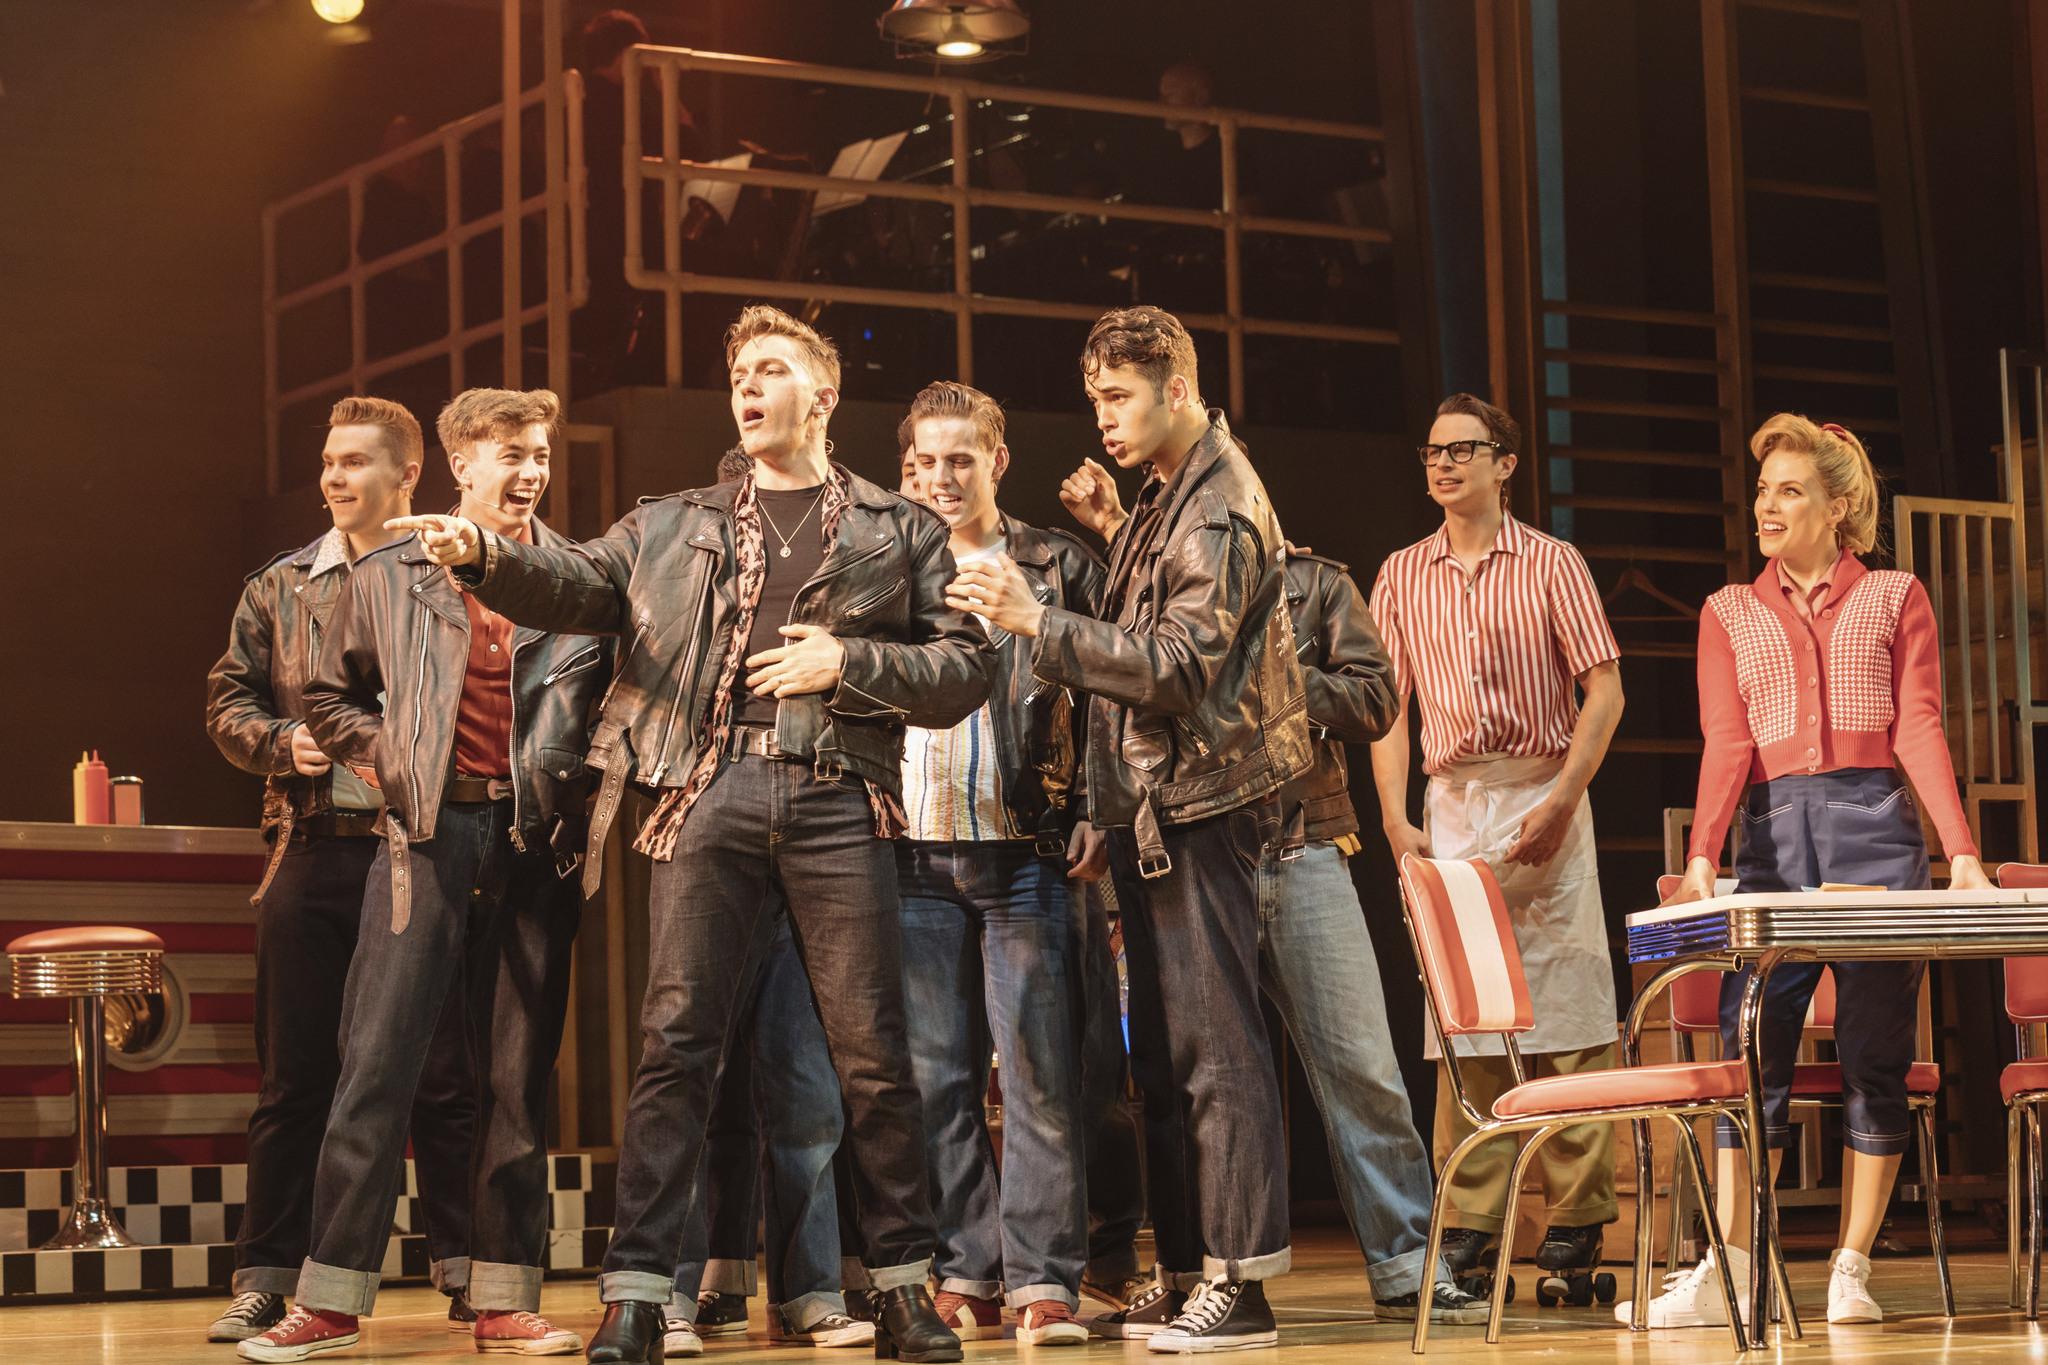 Grease at the Bord Gais Energy Theatre